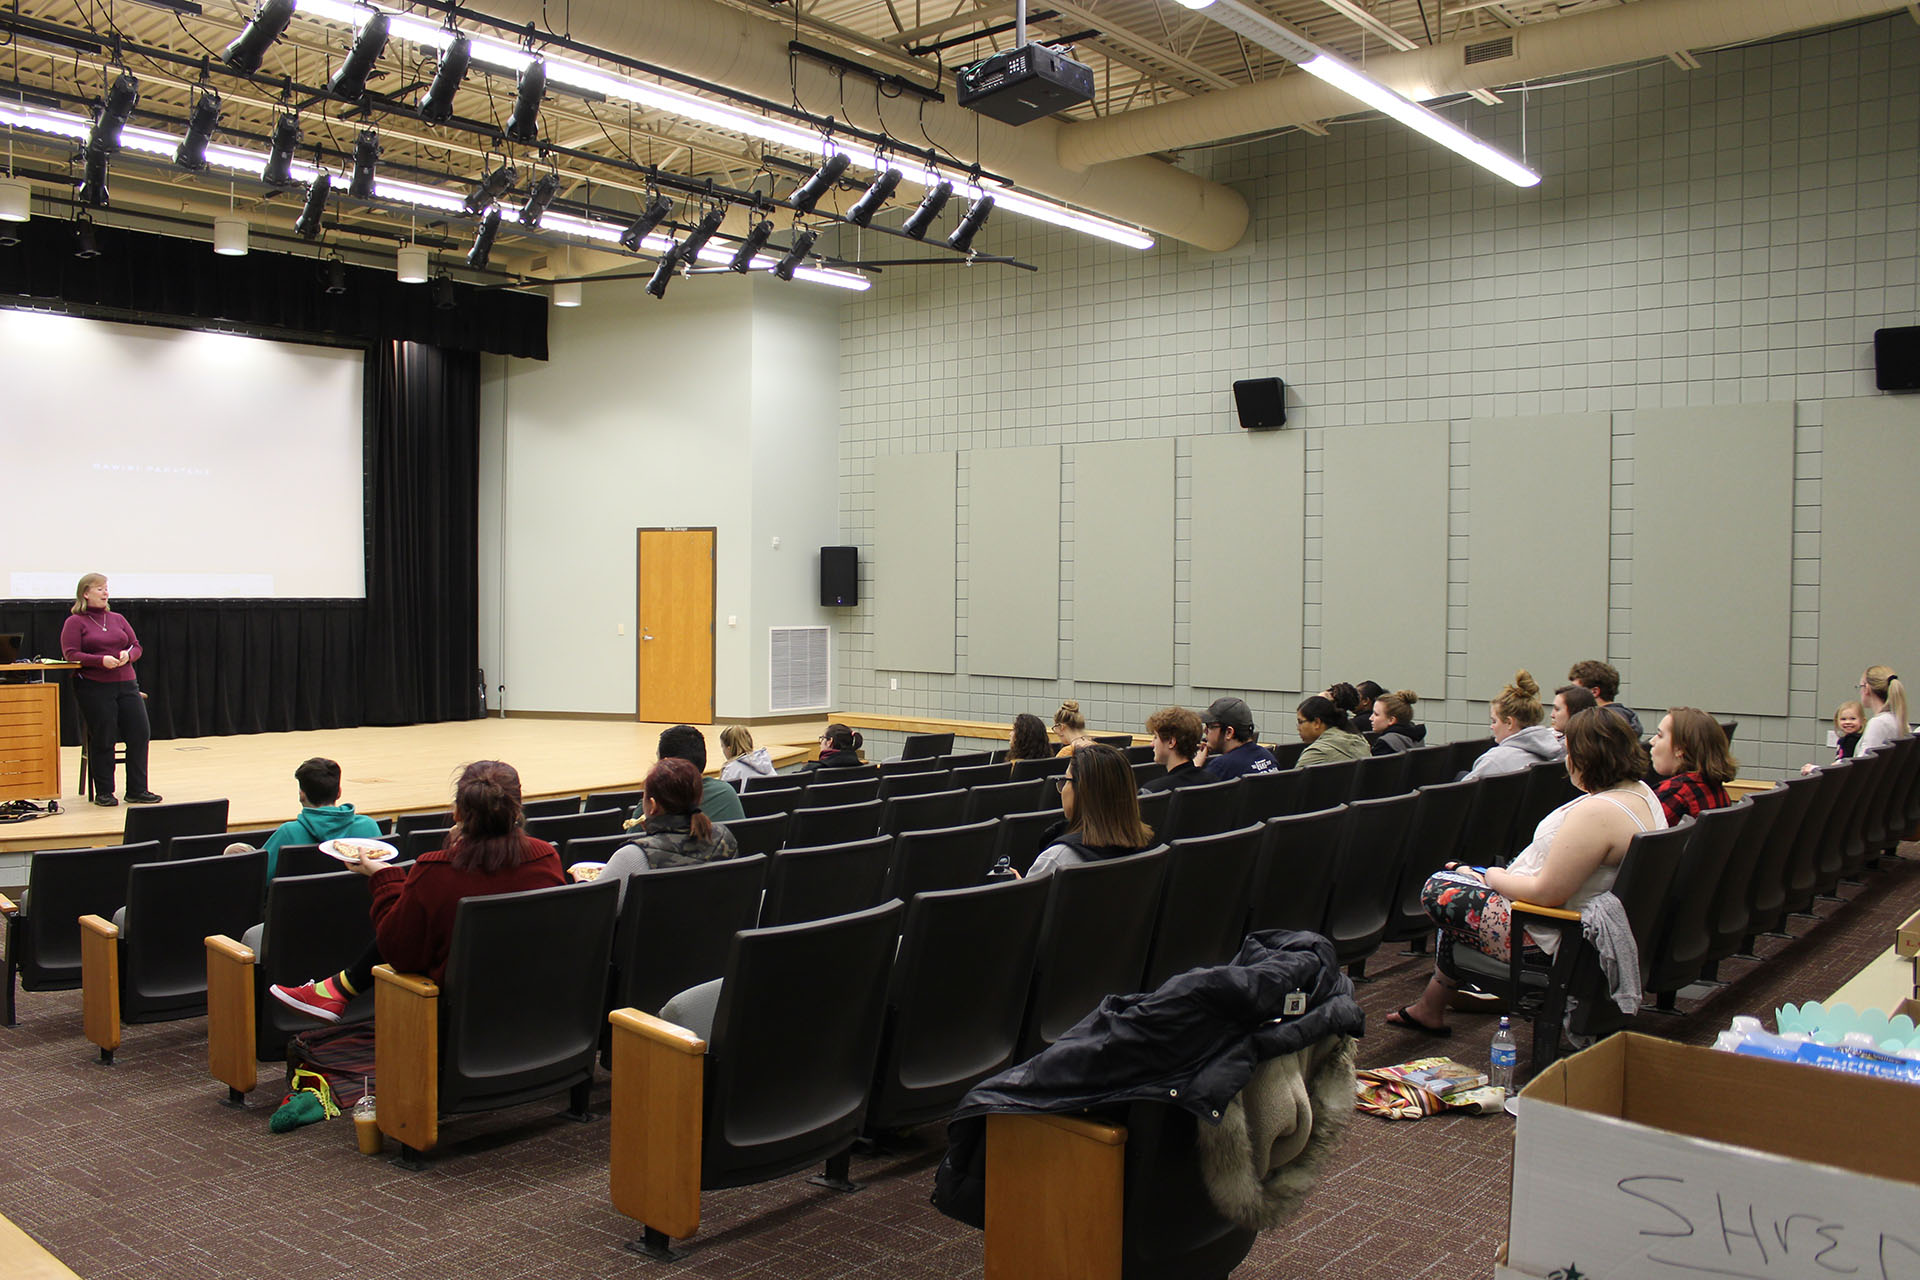 Students sitting in the Student Activity Center Events Theatre listening to a spreaker